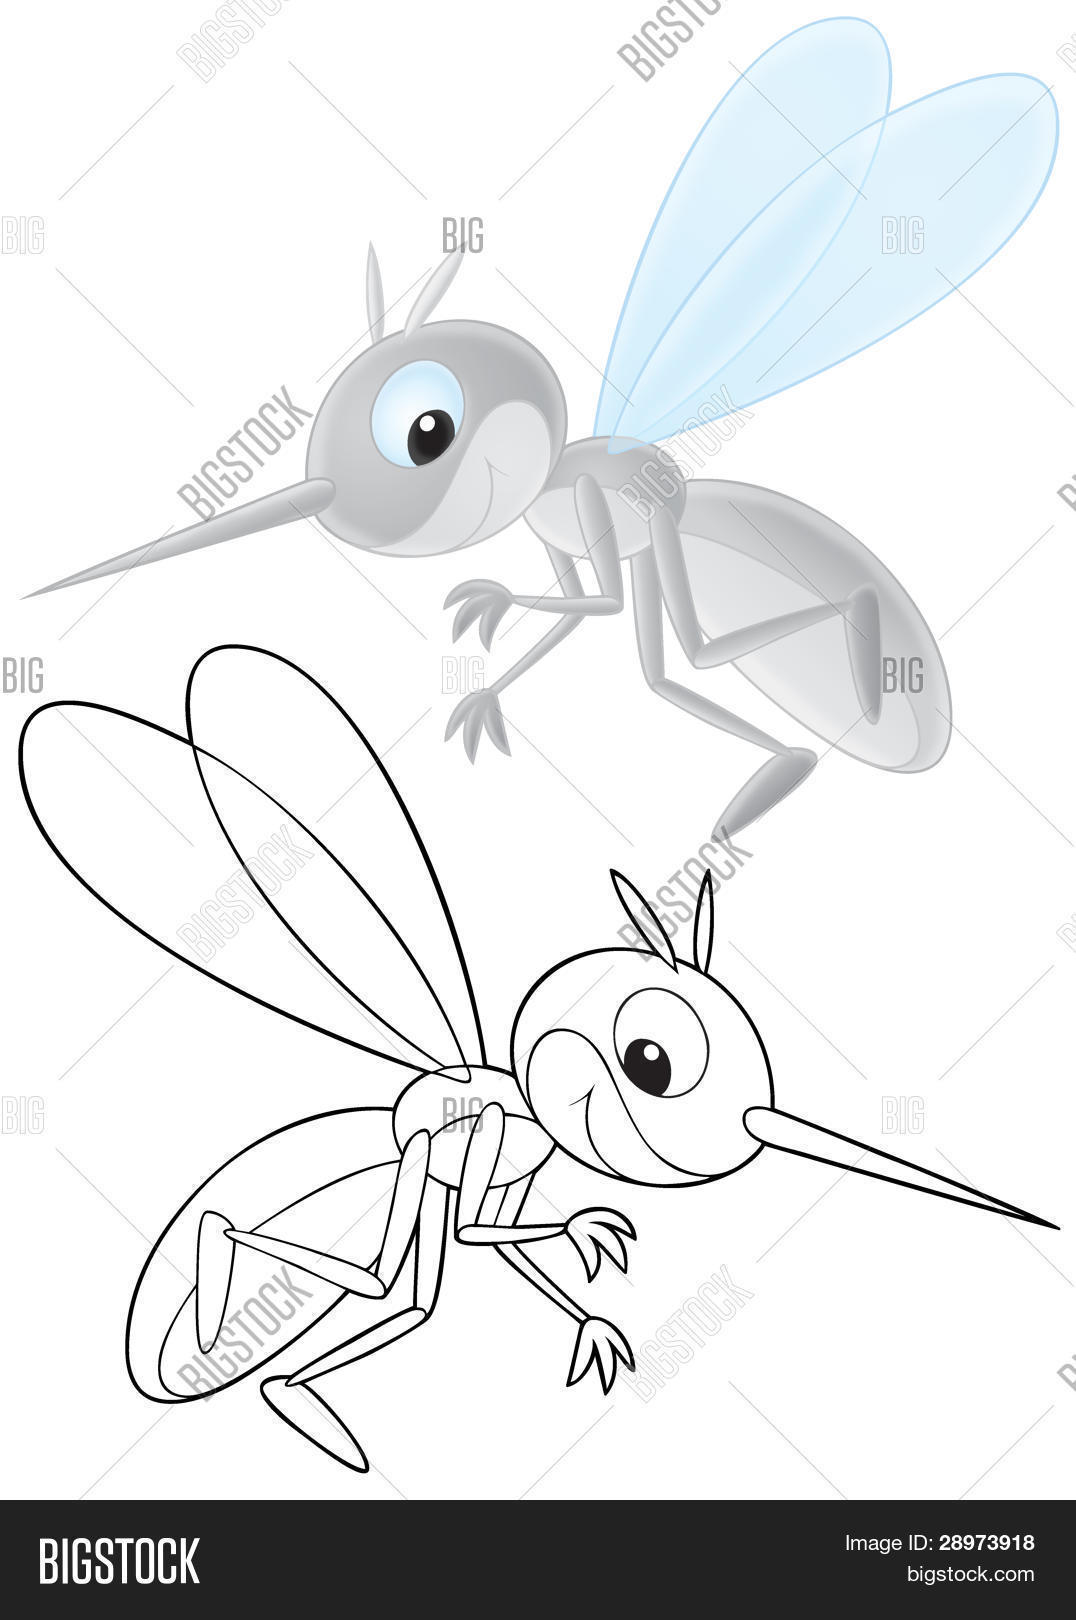 Mosquito coloring pages | Free Coloring Pages | 1620x1076